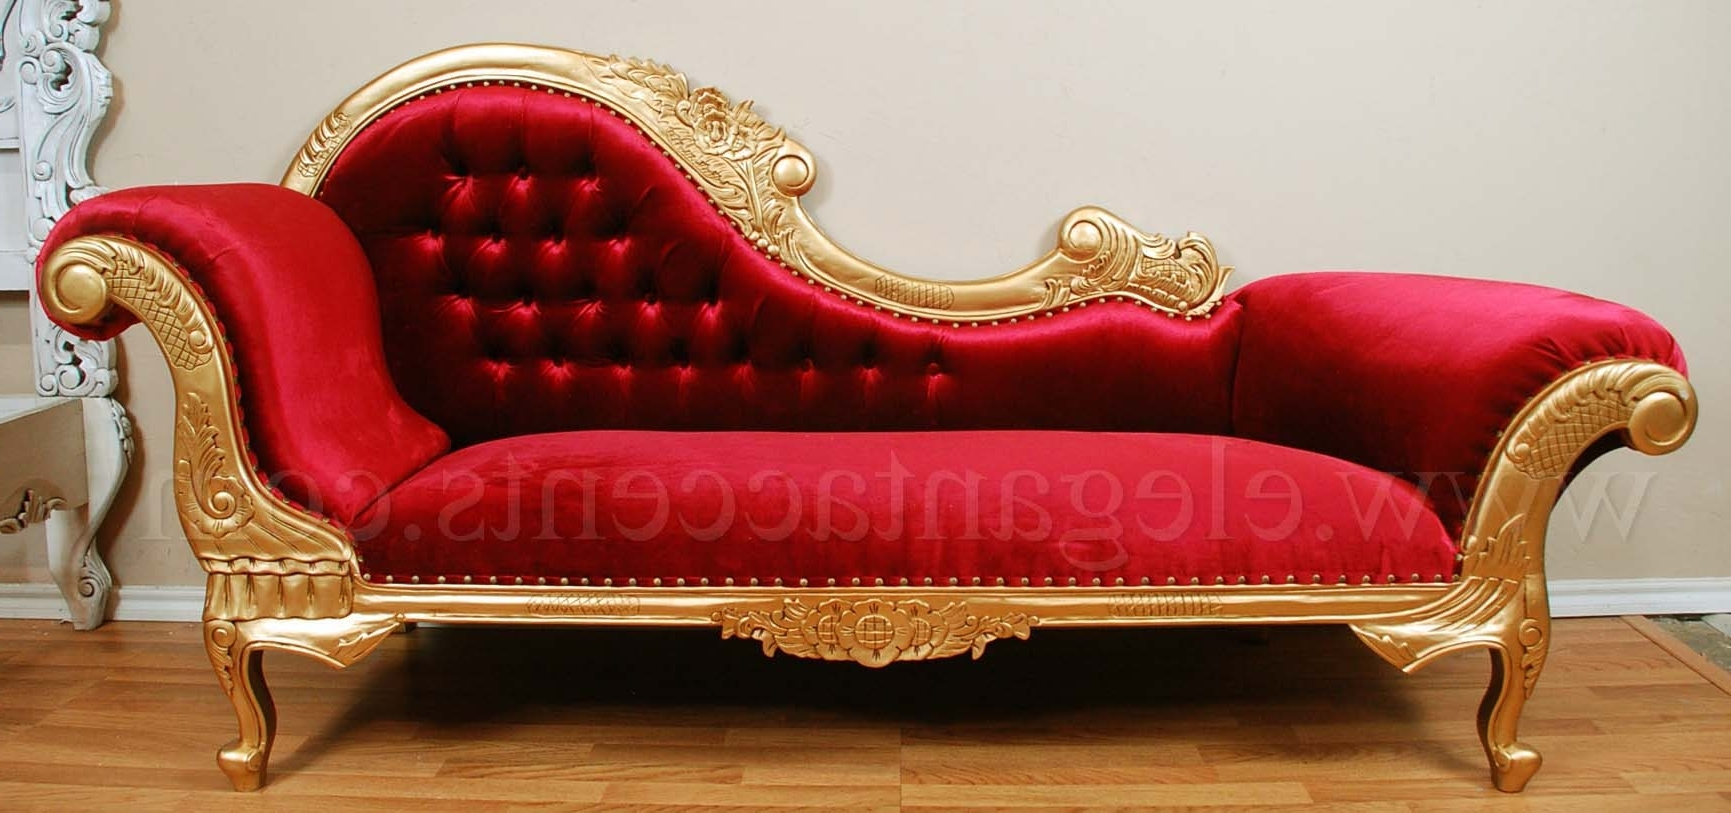 Depositphotos Stock Photo Red Chaise Lounge Over White – Surripui Regarding Widely Used Red Chaises (View 8 of 15)